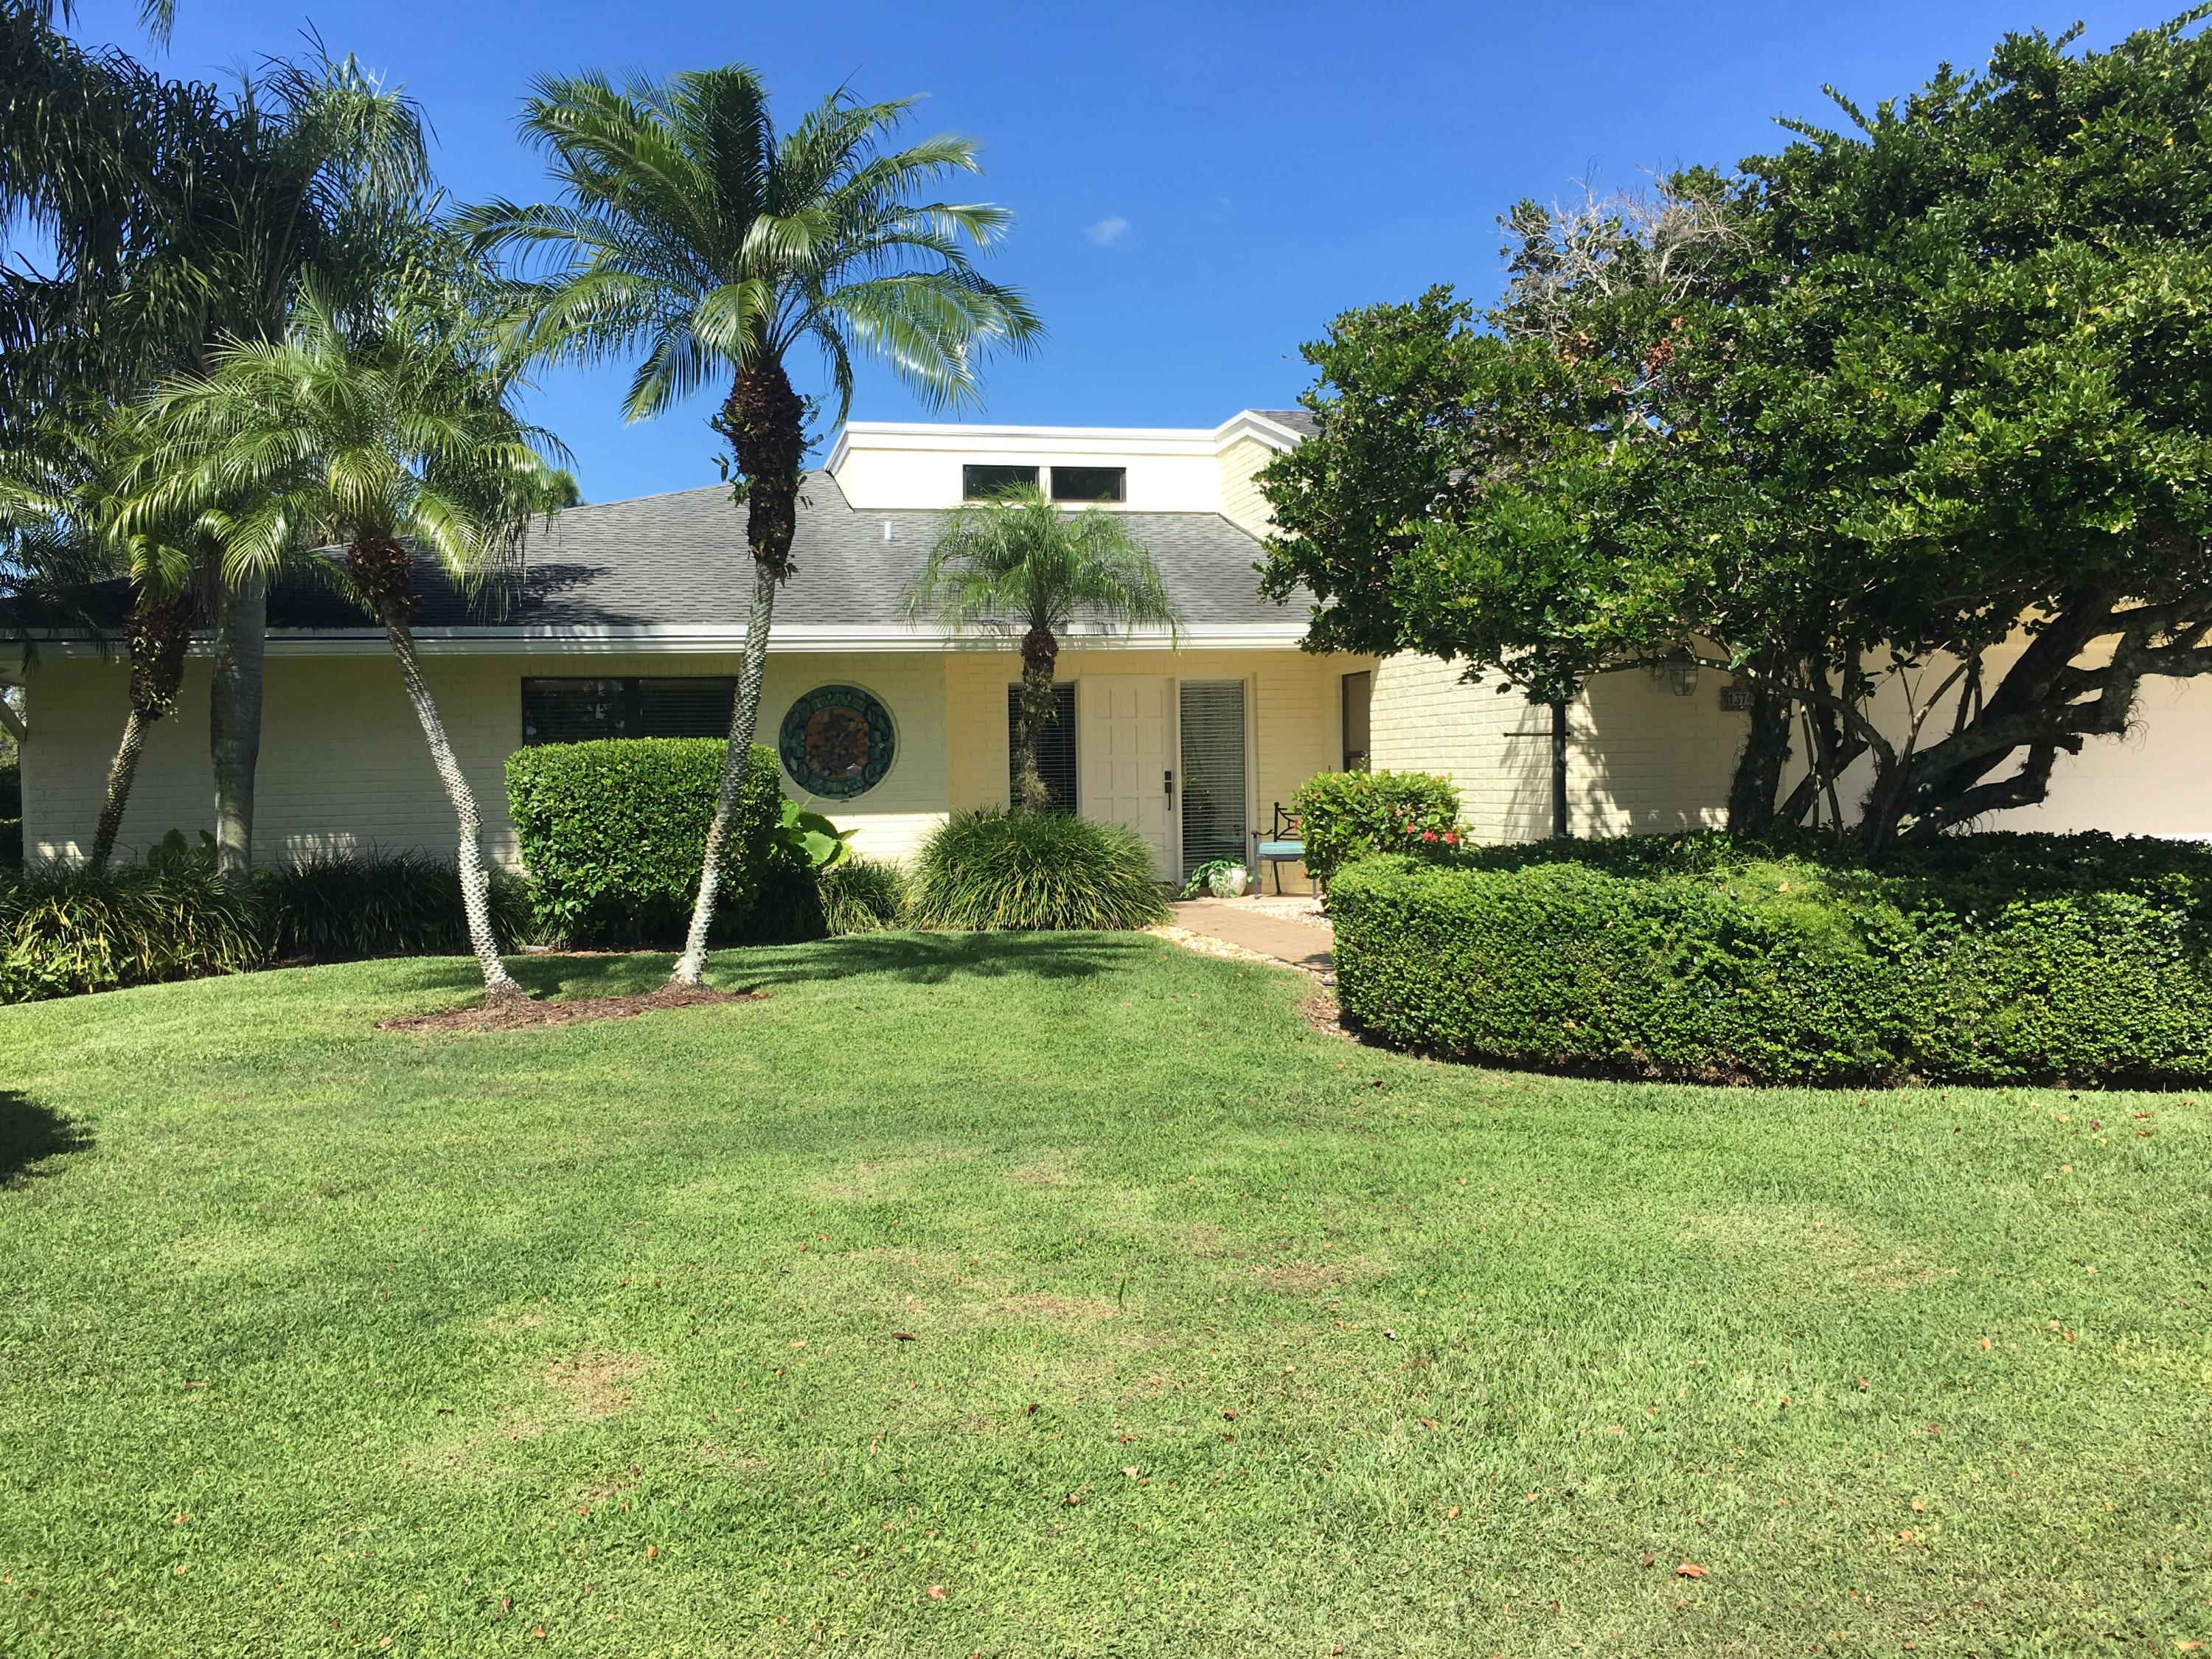 13744 Sand Crane Drive, Palm Beach Gardens, Florida 33418, 3 Bedrooms Bedrooms, ,2.1 BathroomsBathrooms,A,Single family,Sand Crane,RX-10476506